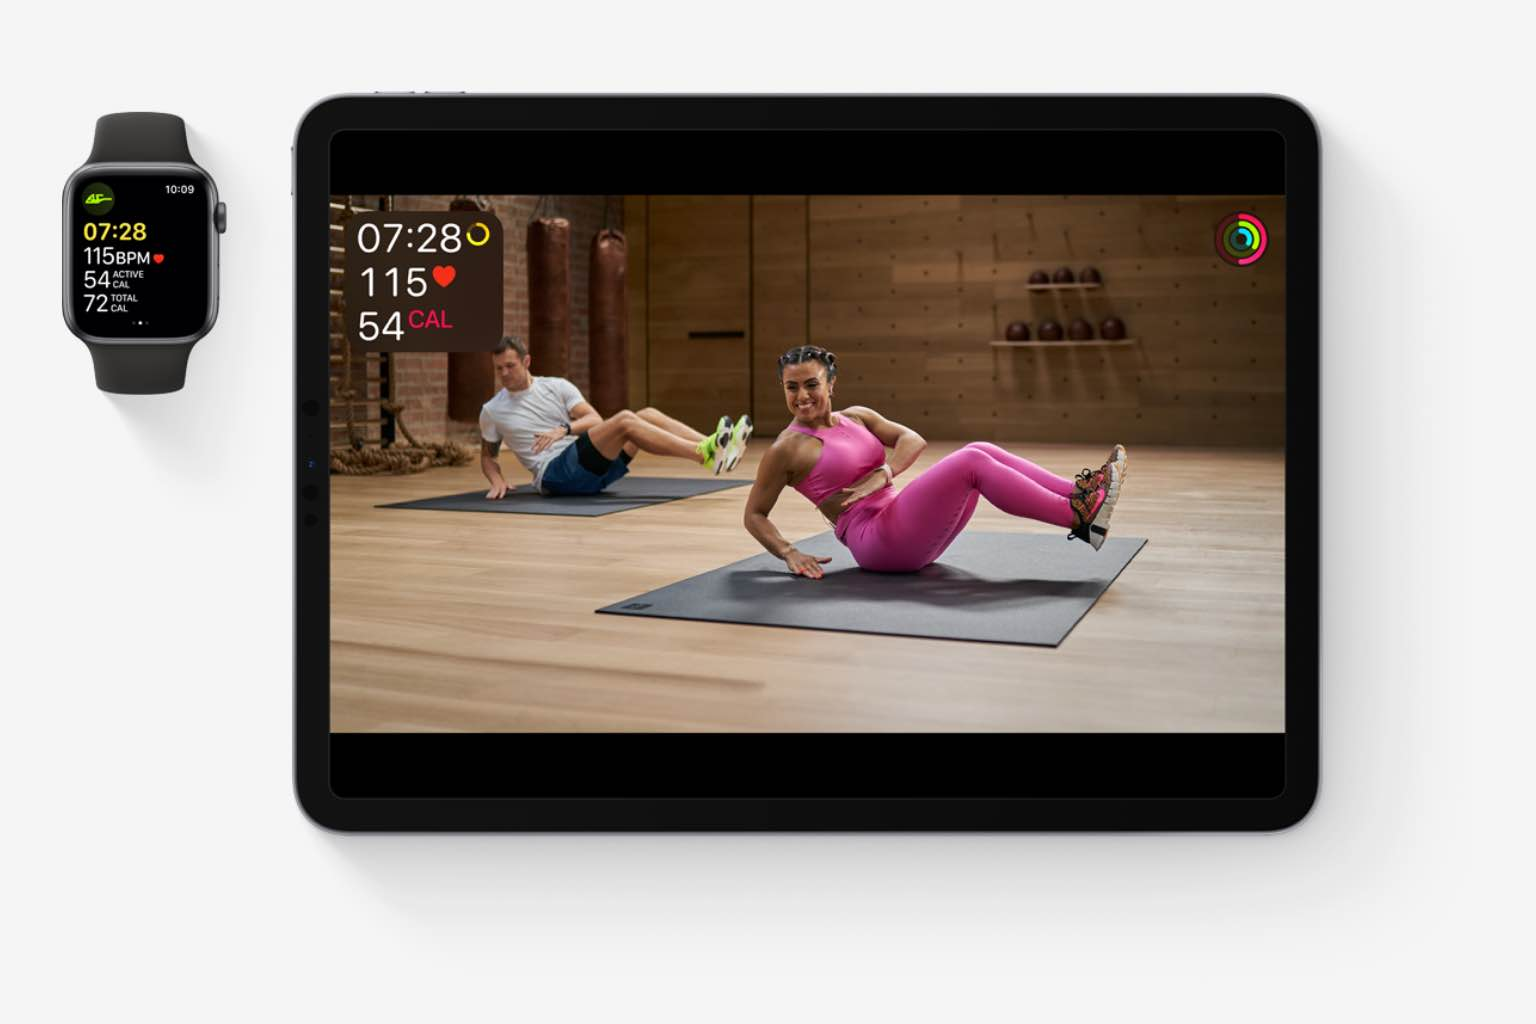 iPad and apple watch with Apple Fitness+ video classes and metrics on the screen.